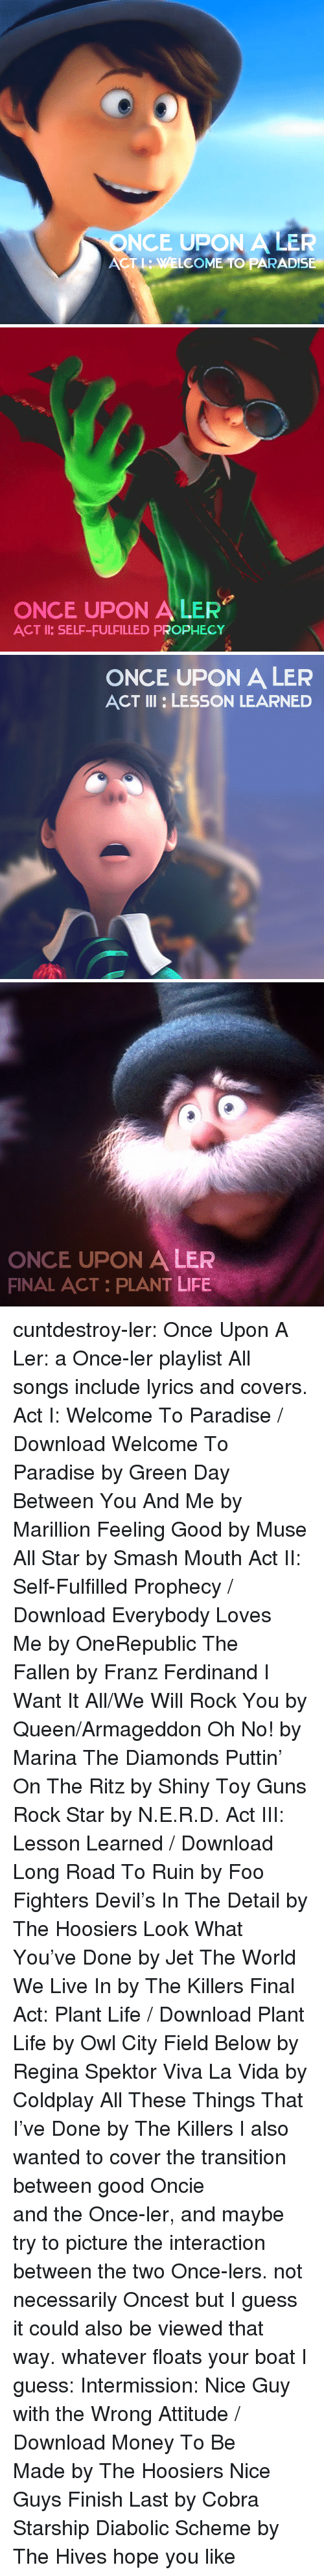 Foo Fighters: ONCE UPON A LER  ACT L: WELCOME TO PARADISE   ONCE UPON A LER  ACT I: SELF-FULFILLED PROPHECY   ONCE UPON A LER  ACT III LESSON LEARNED   ONCE UPON A LER  FINAL ACT PLANT LIFE cuntdestroy-ler:  Once Upon A Ler: a Once-ler playlist All songs include lyrics and covers. Act I: Welcome To Paradise / Download Welcome To Paradiseby Green Day Between You And Meby Marillion Feeling Goodby Muse All Starby Smash Mouth Act II: Self-Fulfilled Prophecy / Download Everybody Loves Meby OneRepublic The Fallenby Franz Ferdinand I Want It All/We Will Rock Youby Queen/Armageddon Oh No!by Marina  The Diamonds Puttin' On The Ritzby Shiny Toy Guns Rock Starby N.E.R.D. Act III: Lesson Learned / Download Long Road To Ruinby Foo Fighters Devil's In The Detailby The Hoosiers Look What You've Doneby Jet The World We Live Inby The Killers Final Act: Plant Life / Download Plant Lifeby Owl City Field Belowby Regina Spektor Viva La Vidaby Coldplay All These Things That I've Doneby The Killers I also wanted to cover the transition between good Oncie andtheOnce-ler, and maybe try to picture the interaction between the two Once-lers. not necessarily Oncest but I guess it could also be viewed that way. whatever floats your boat I guess:  Intermission: Nice Guy with the Wrong Attitude / Download Money To Be Madeby The Hoosiers Nice Guys Finish Lastby Cobra Starship Diabolic Schemeby The Hives hope you like